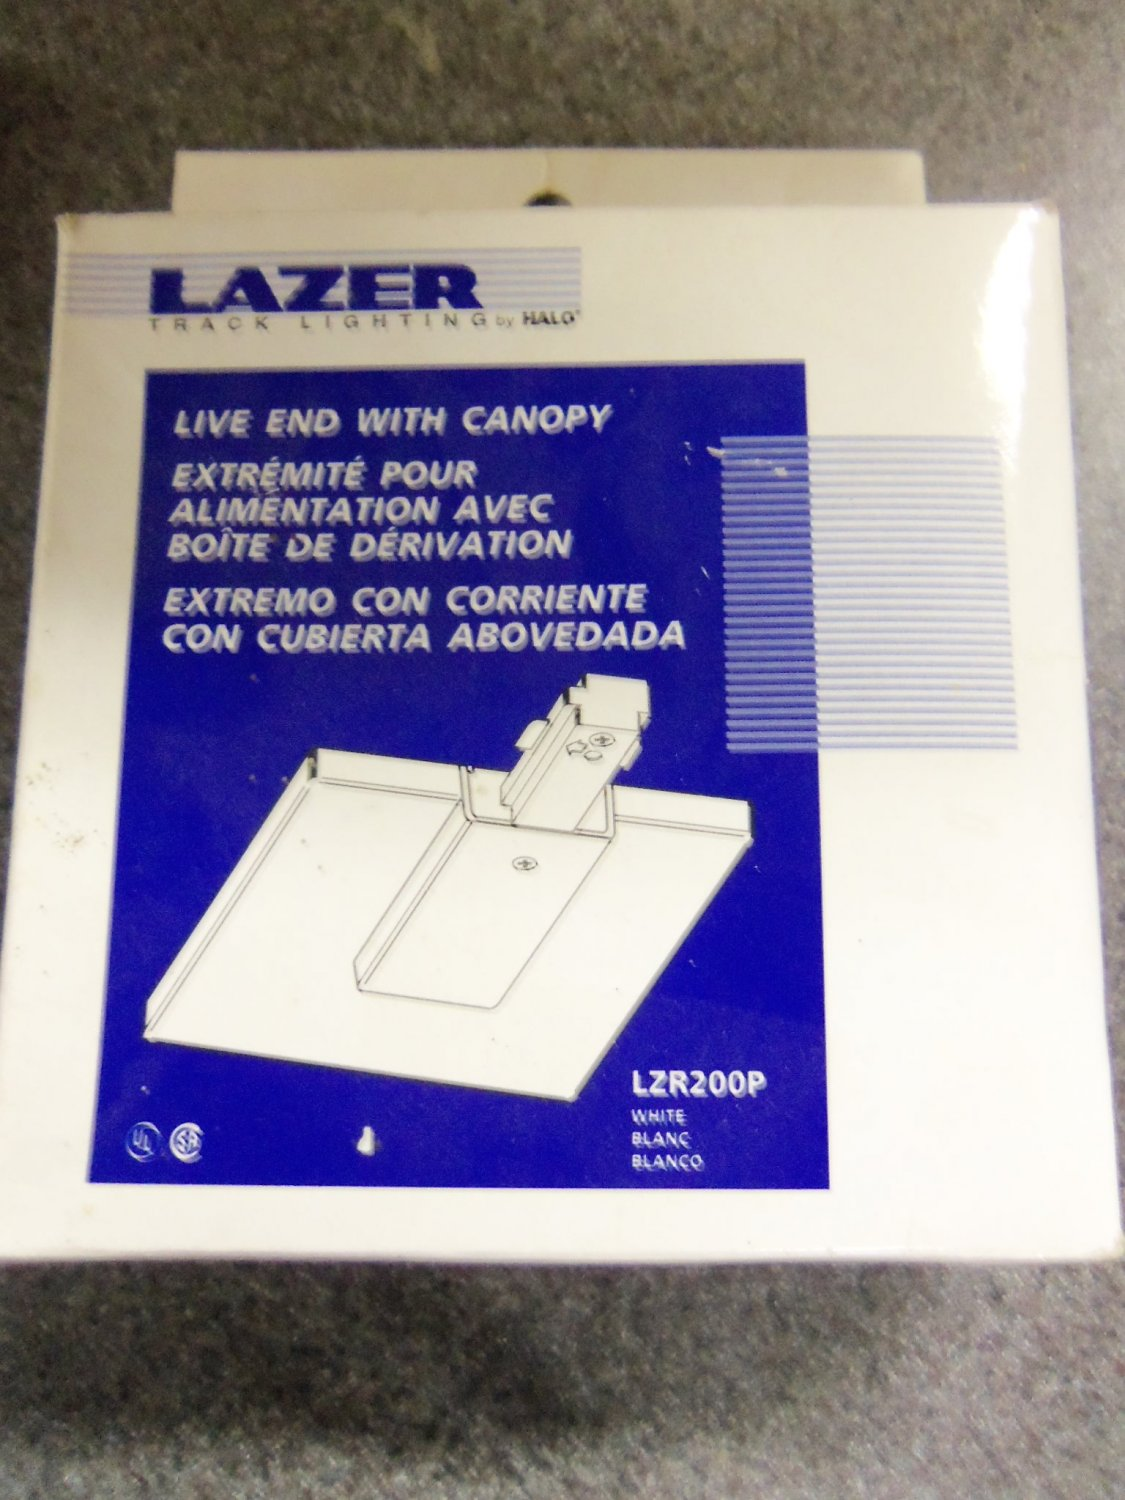 & Halo Lazer Track Lighting Live End with Canopy - White - Set of 3